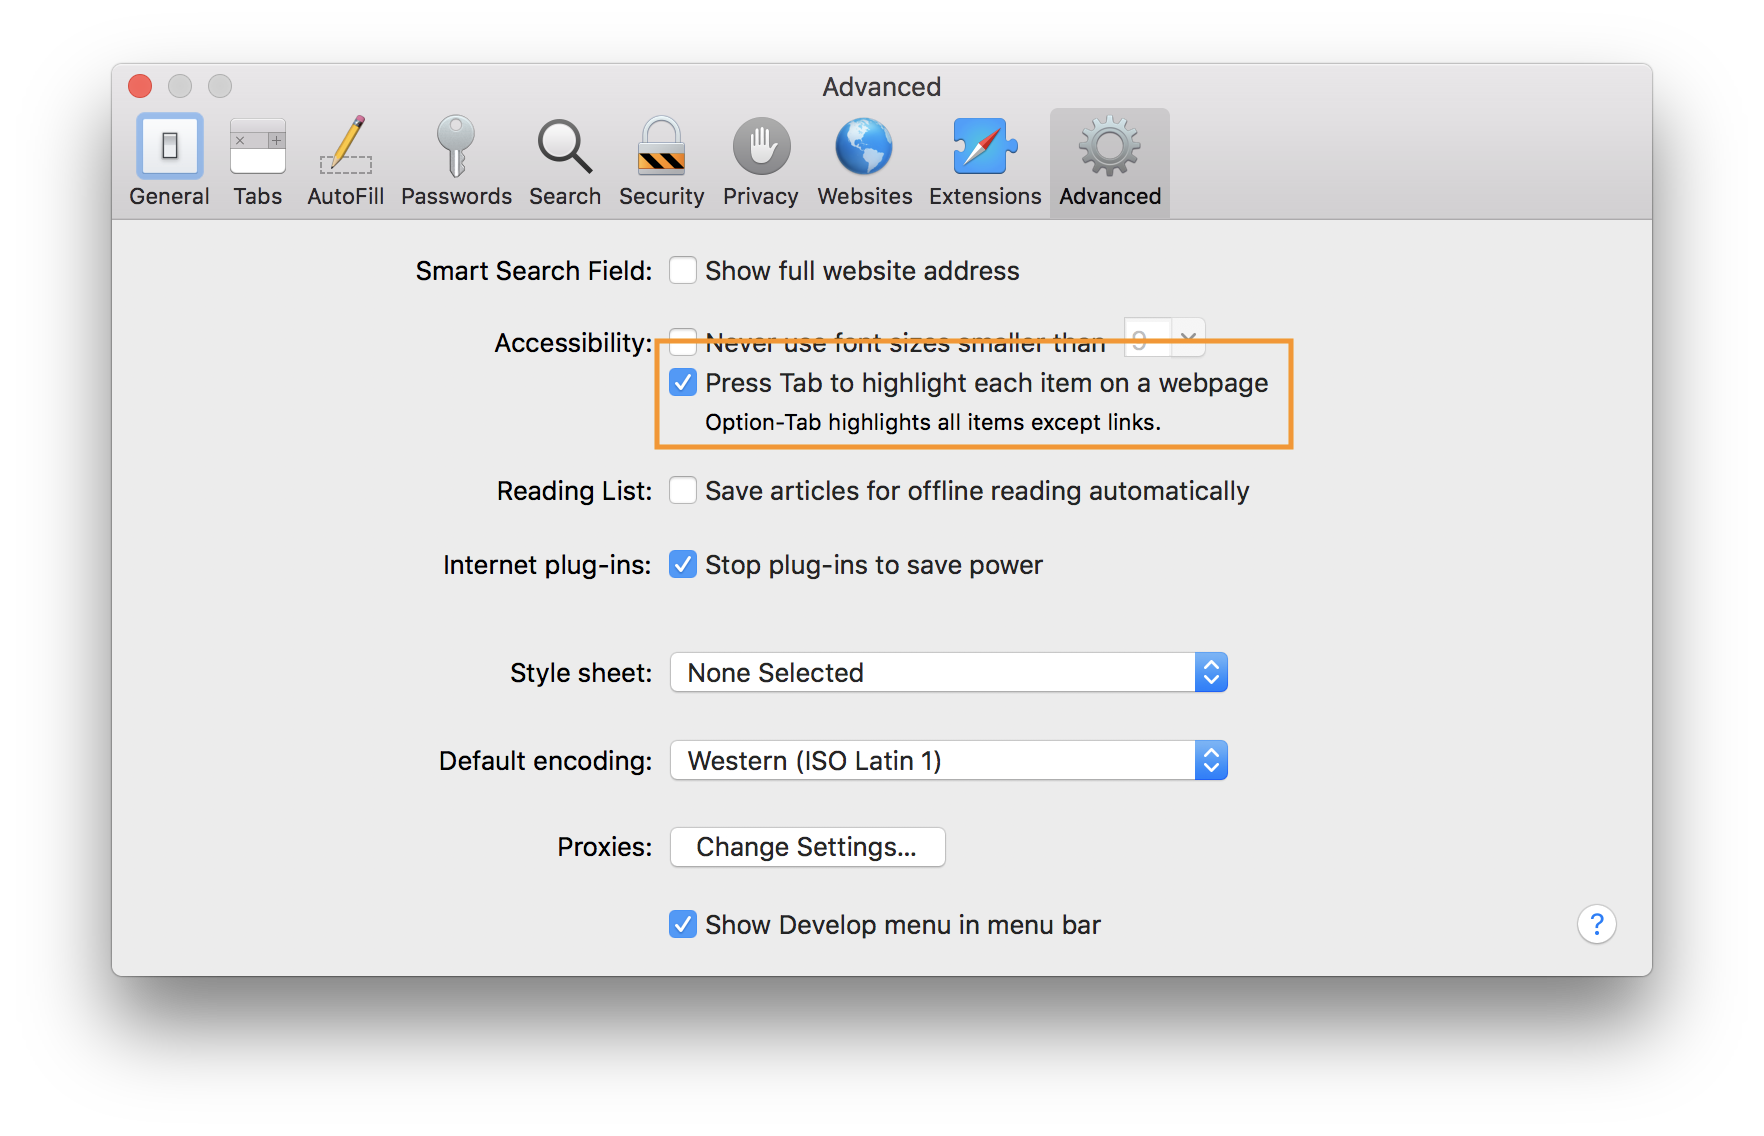 The Safari Preferences window. The screenshot is highlighting the selection of the 'Press Tab to highlight each item on a webpage' checkbox.